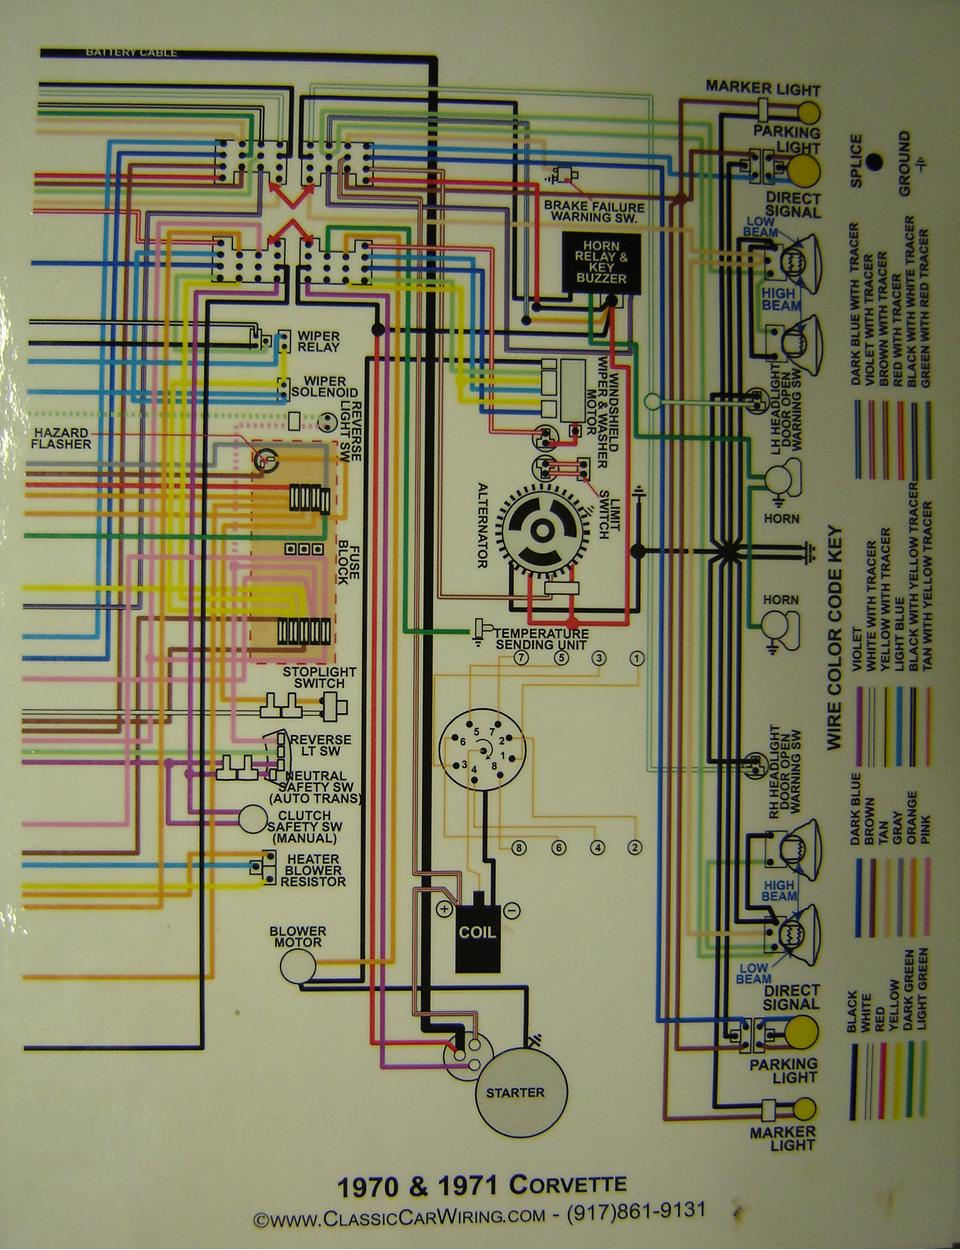 1970 71 corvette color wiring diagram B chevy diagrams color wiring schematics at aneh.co